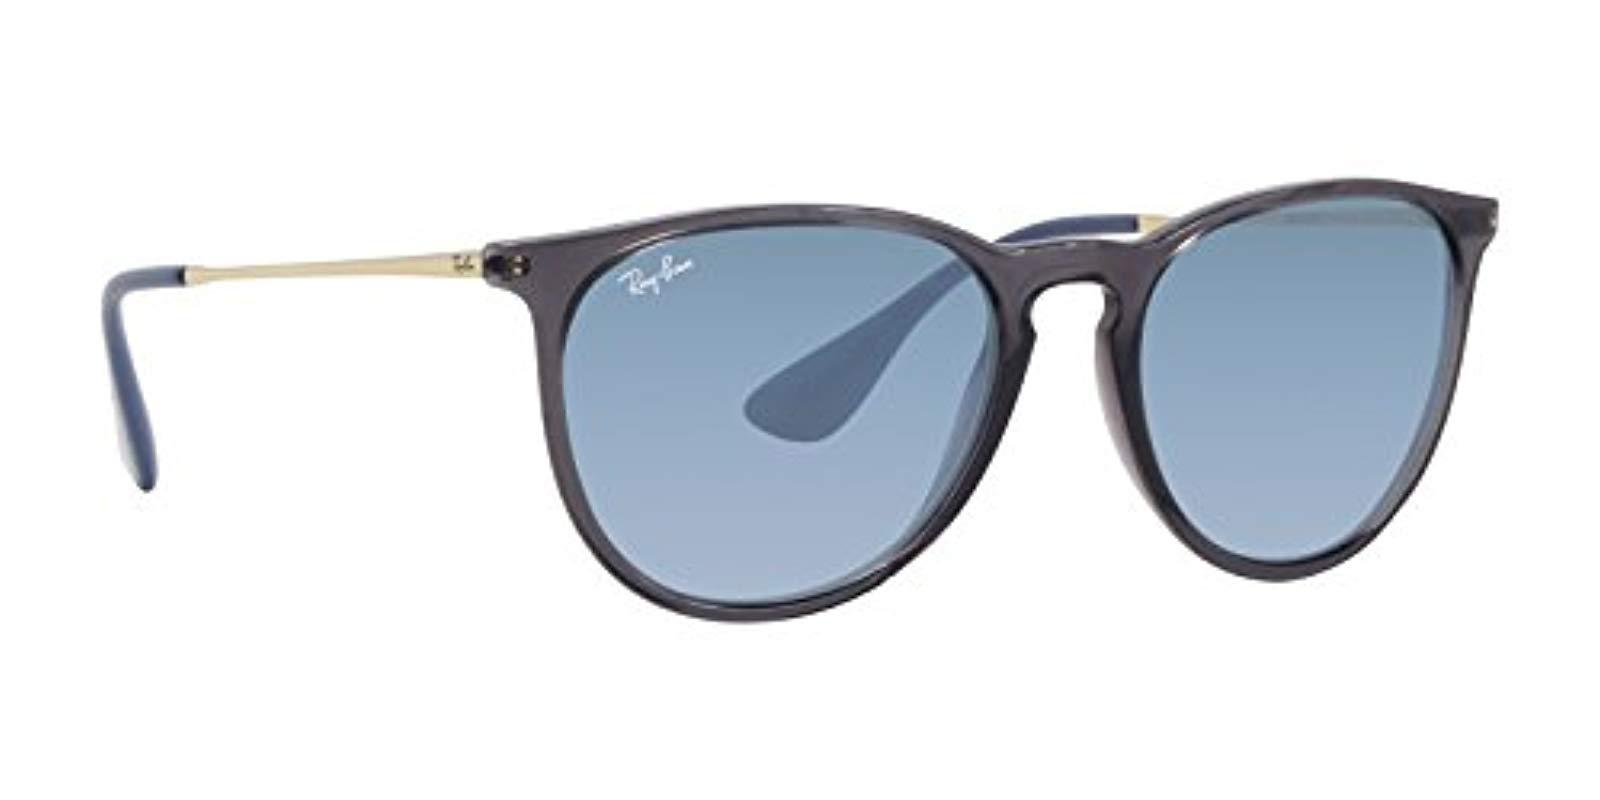 470d77f8549 Lyst - Ray-Ban Erika Velvet Rb4171 Sunglasses in Gray - Save ...